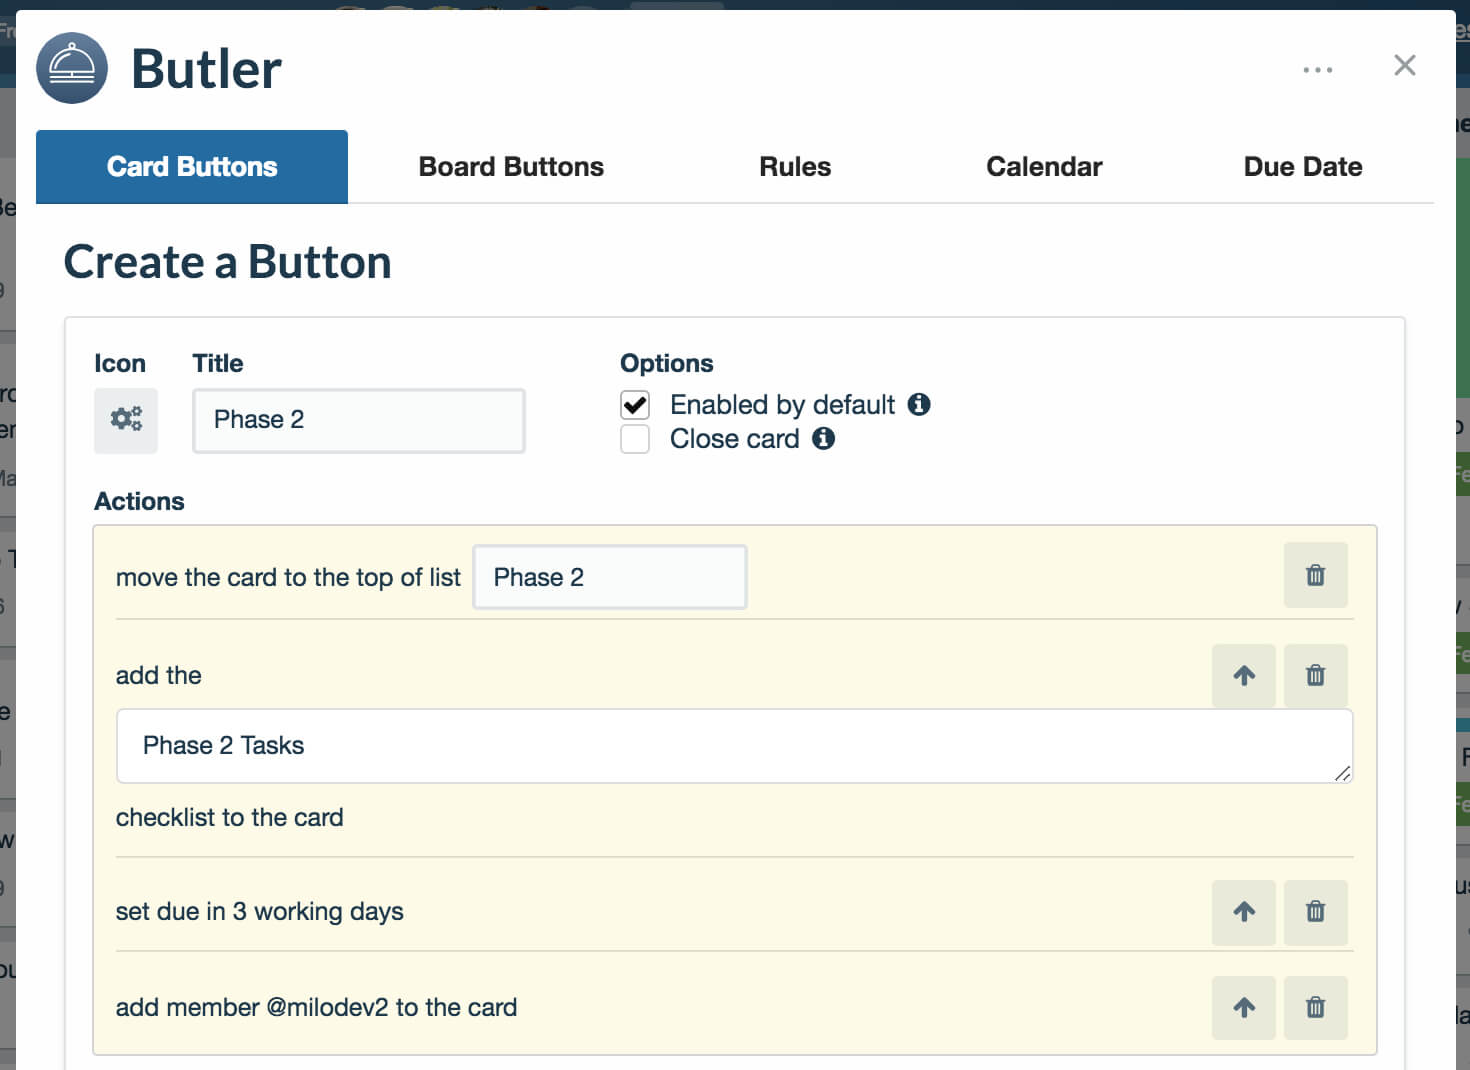 Butler Card Button Setup